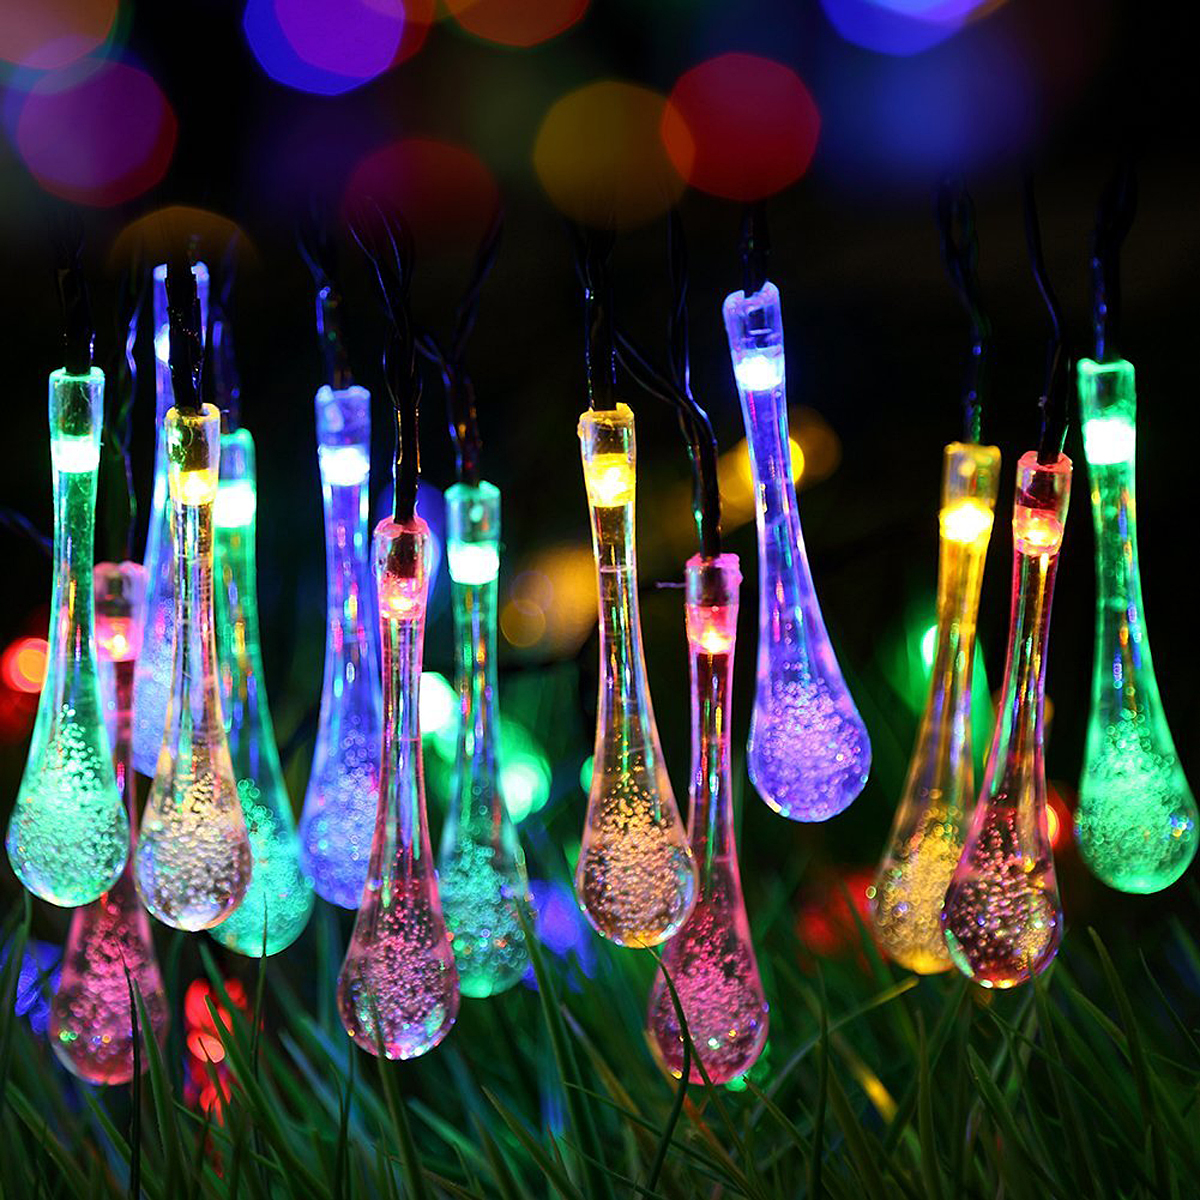 20 LED Solar Water Drop Solar Powered String Lights LED Fairy Light for Christmas Wedding Party Festival Outdoor Decoration P25